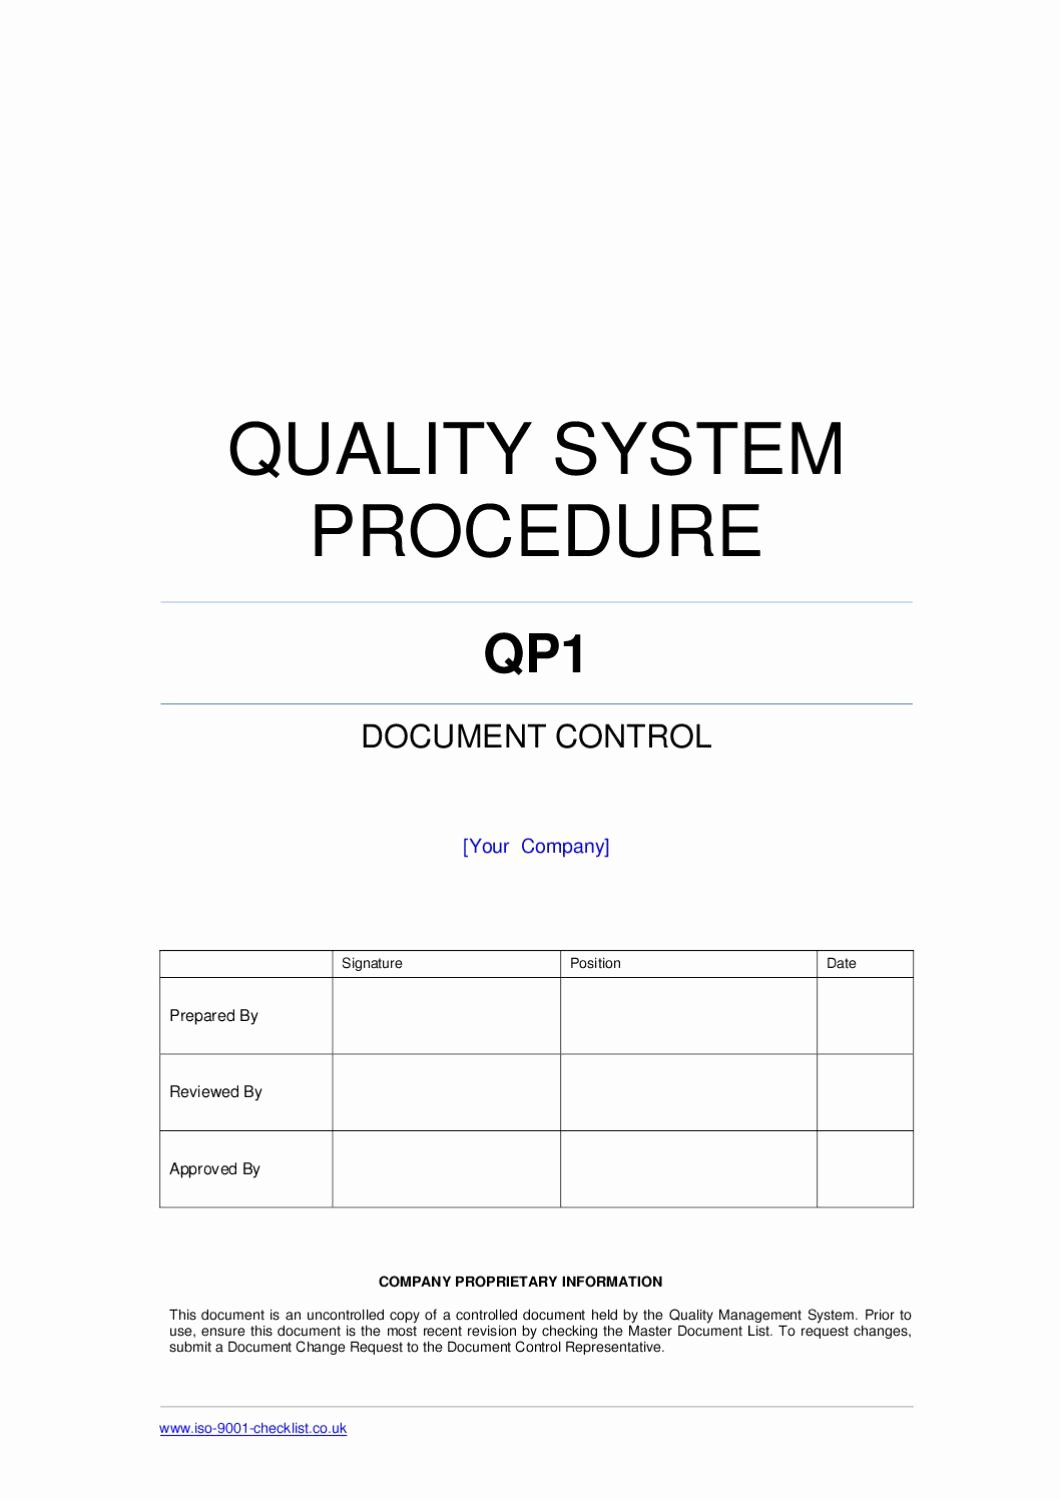 Quality Control Document Template Fresh Document Control Procedure Example by iso 9001 Checklist